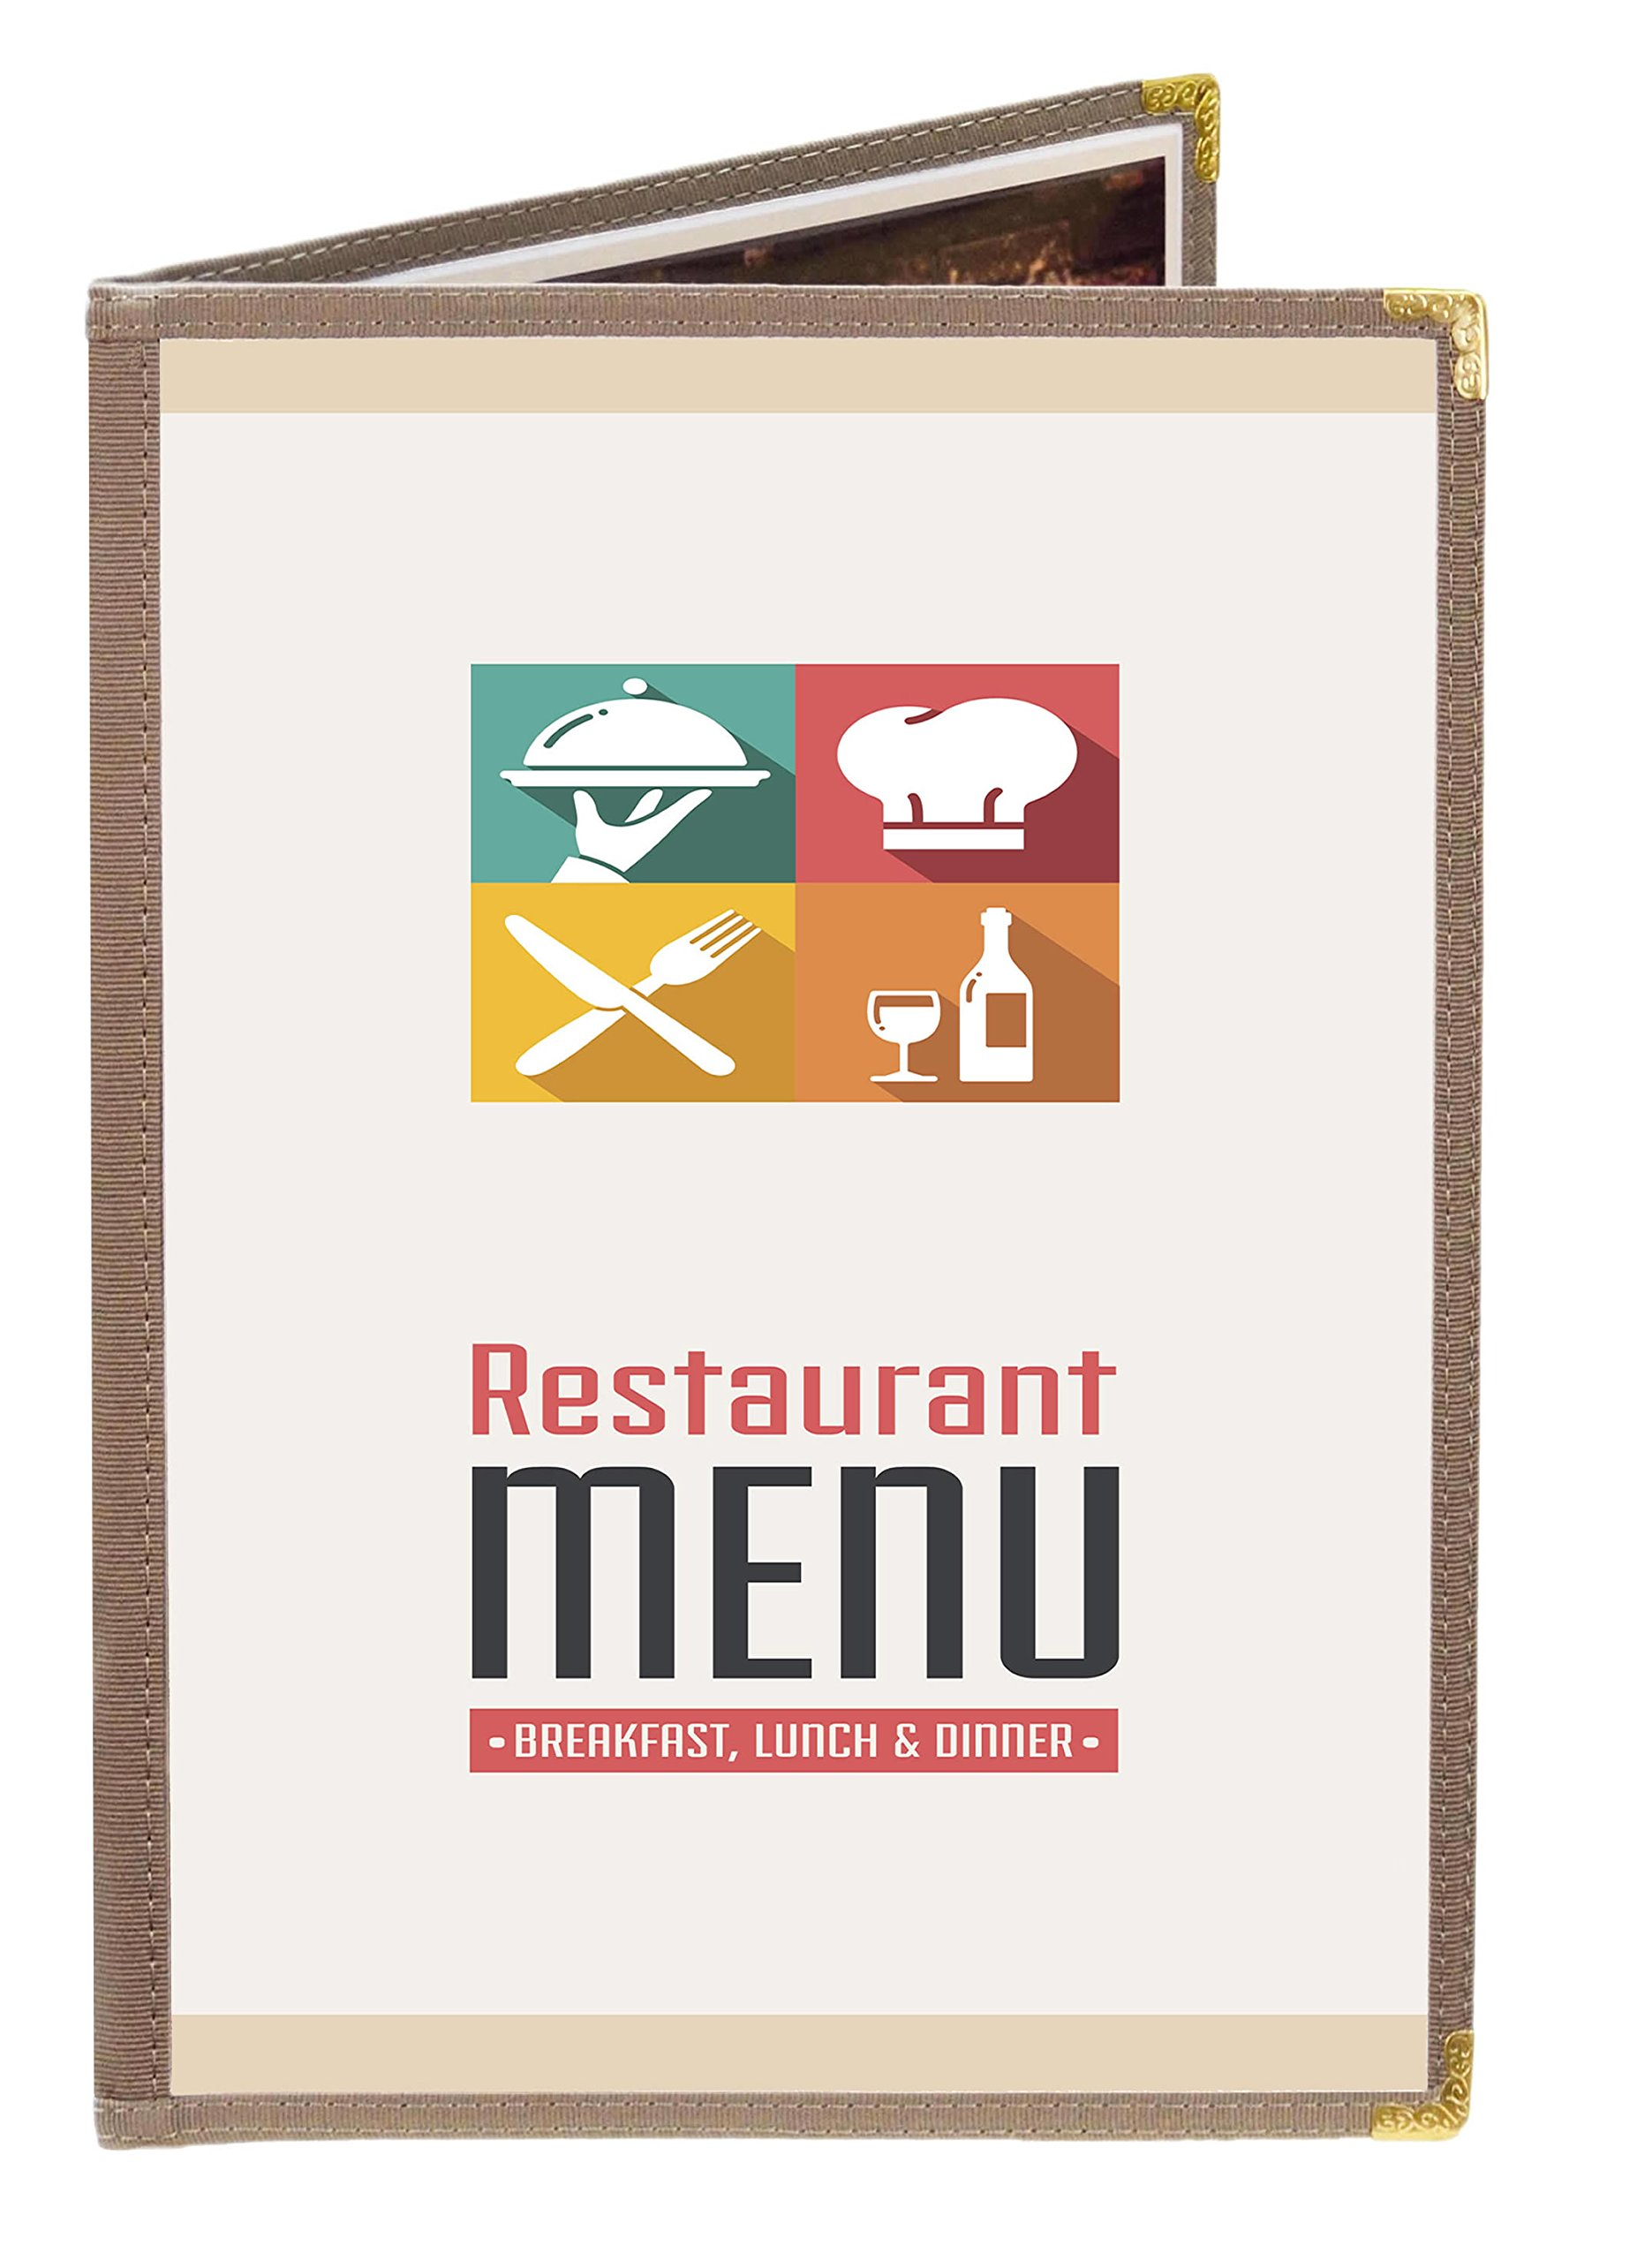 25 BETTER QUALITY Menu Covers #3624 STEEL GREY NYLON FABRIC EDGE DOUBLE PANEL - 4-VIEW - 8.5'' WIDE x 11'' TALL - DOUBLE-STITCHED. Gold metal corners. SEE MORE: Type MenuCoverMan in Amazon search.